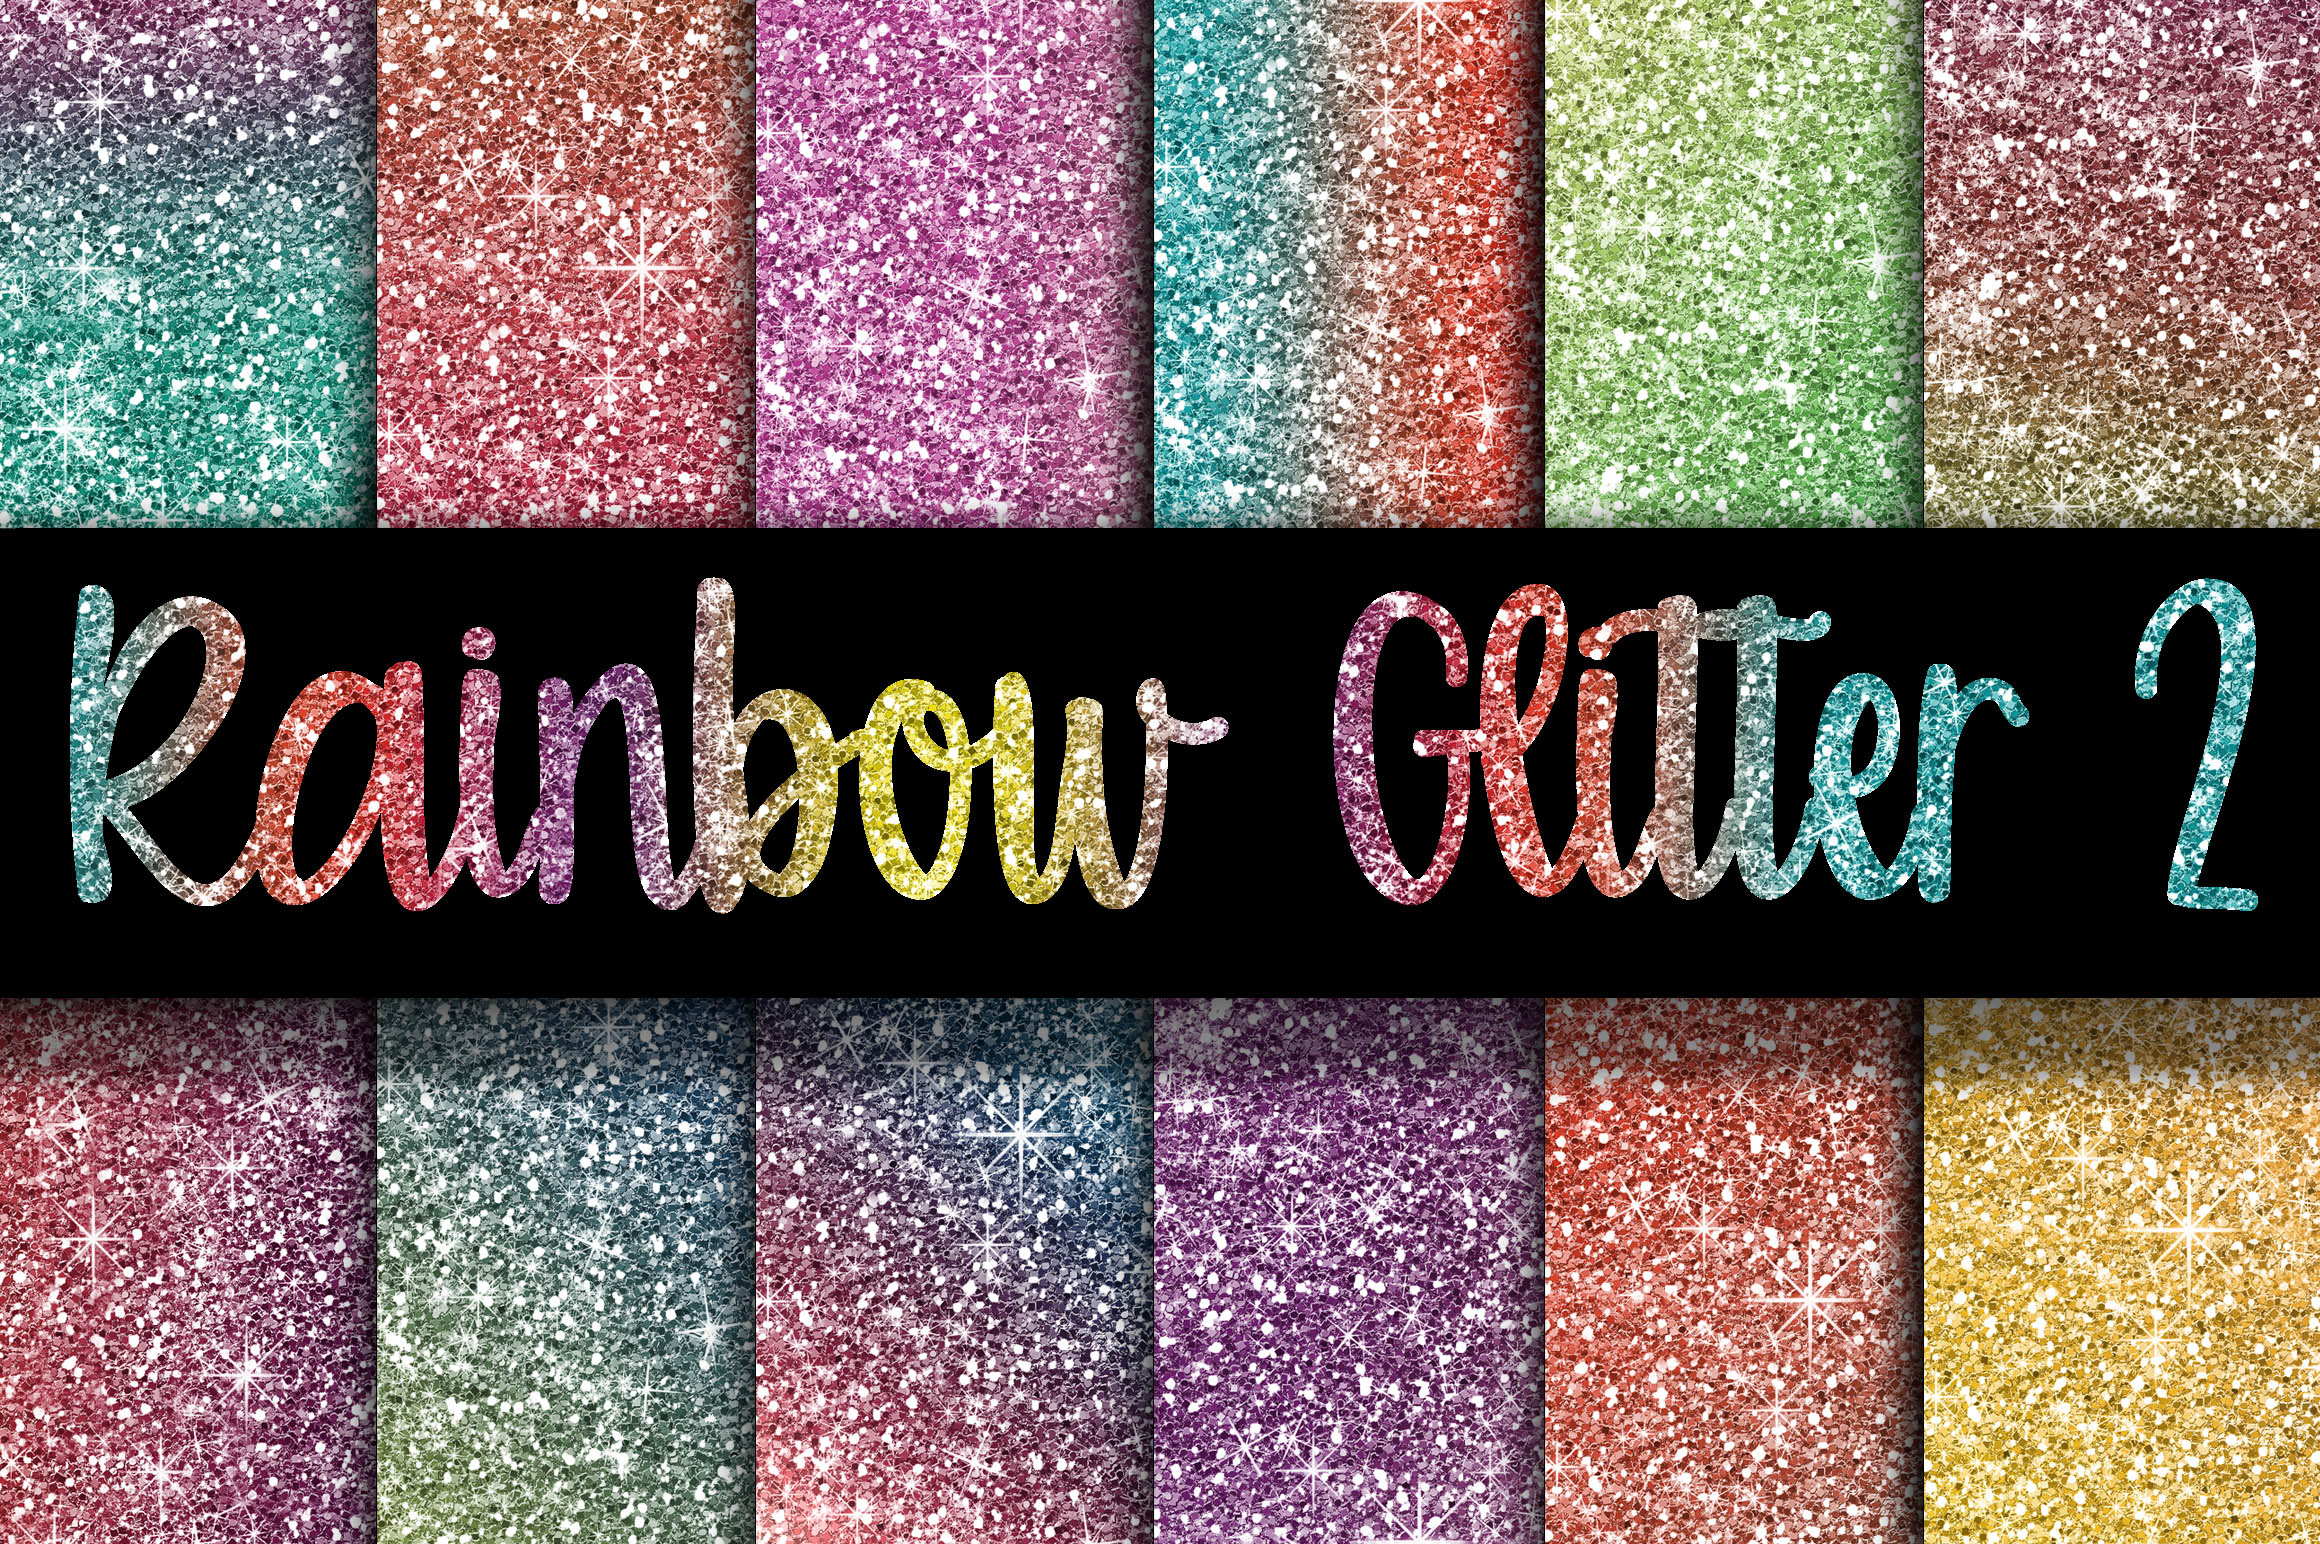 Rainbow Glitter Digital Paper Textures 2 Graphic Backgrounds By oldmarketdesigns